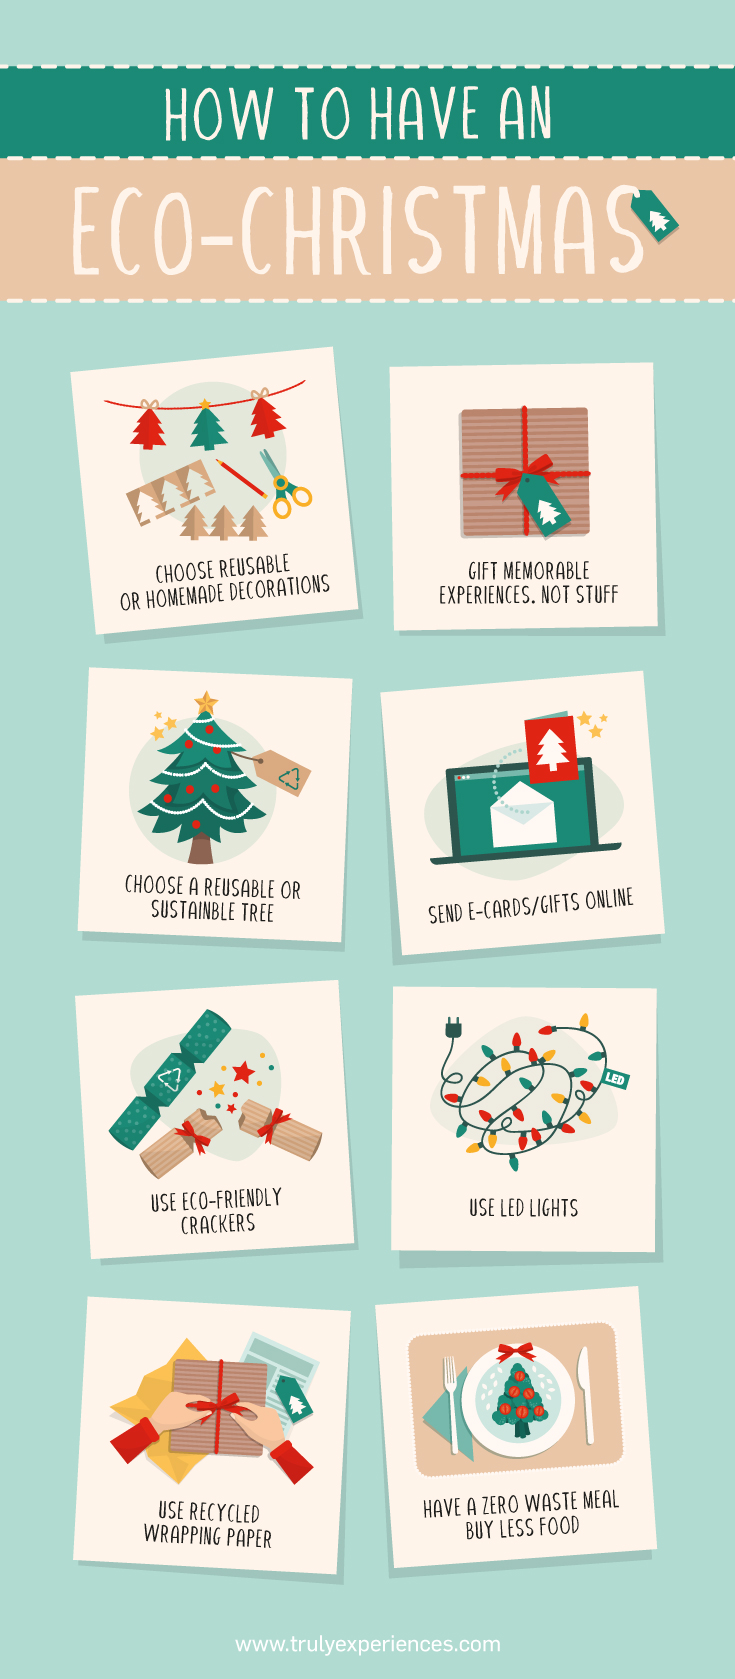 How to Have an Eco-Christmas